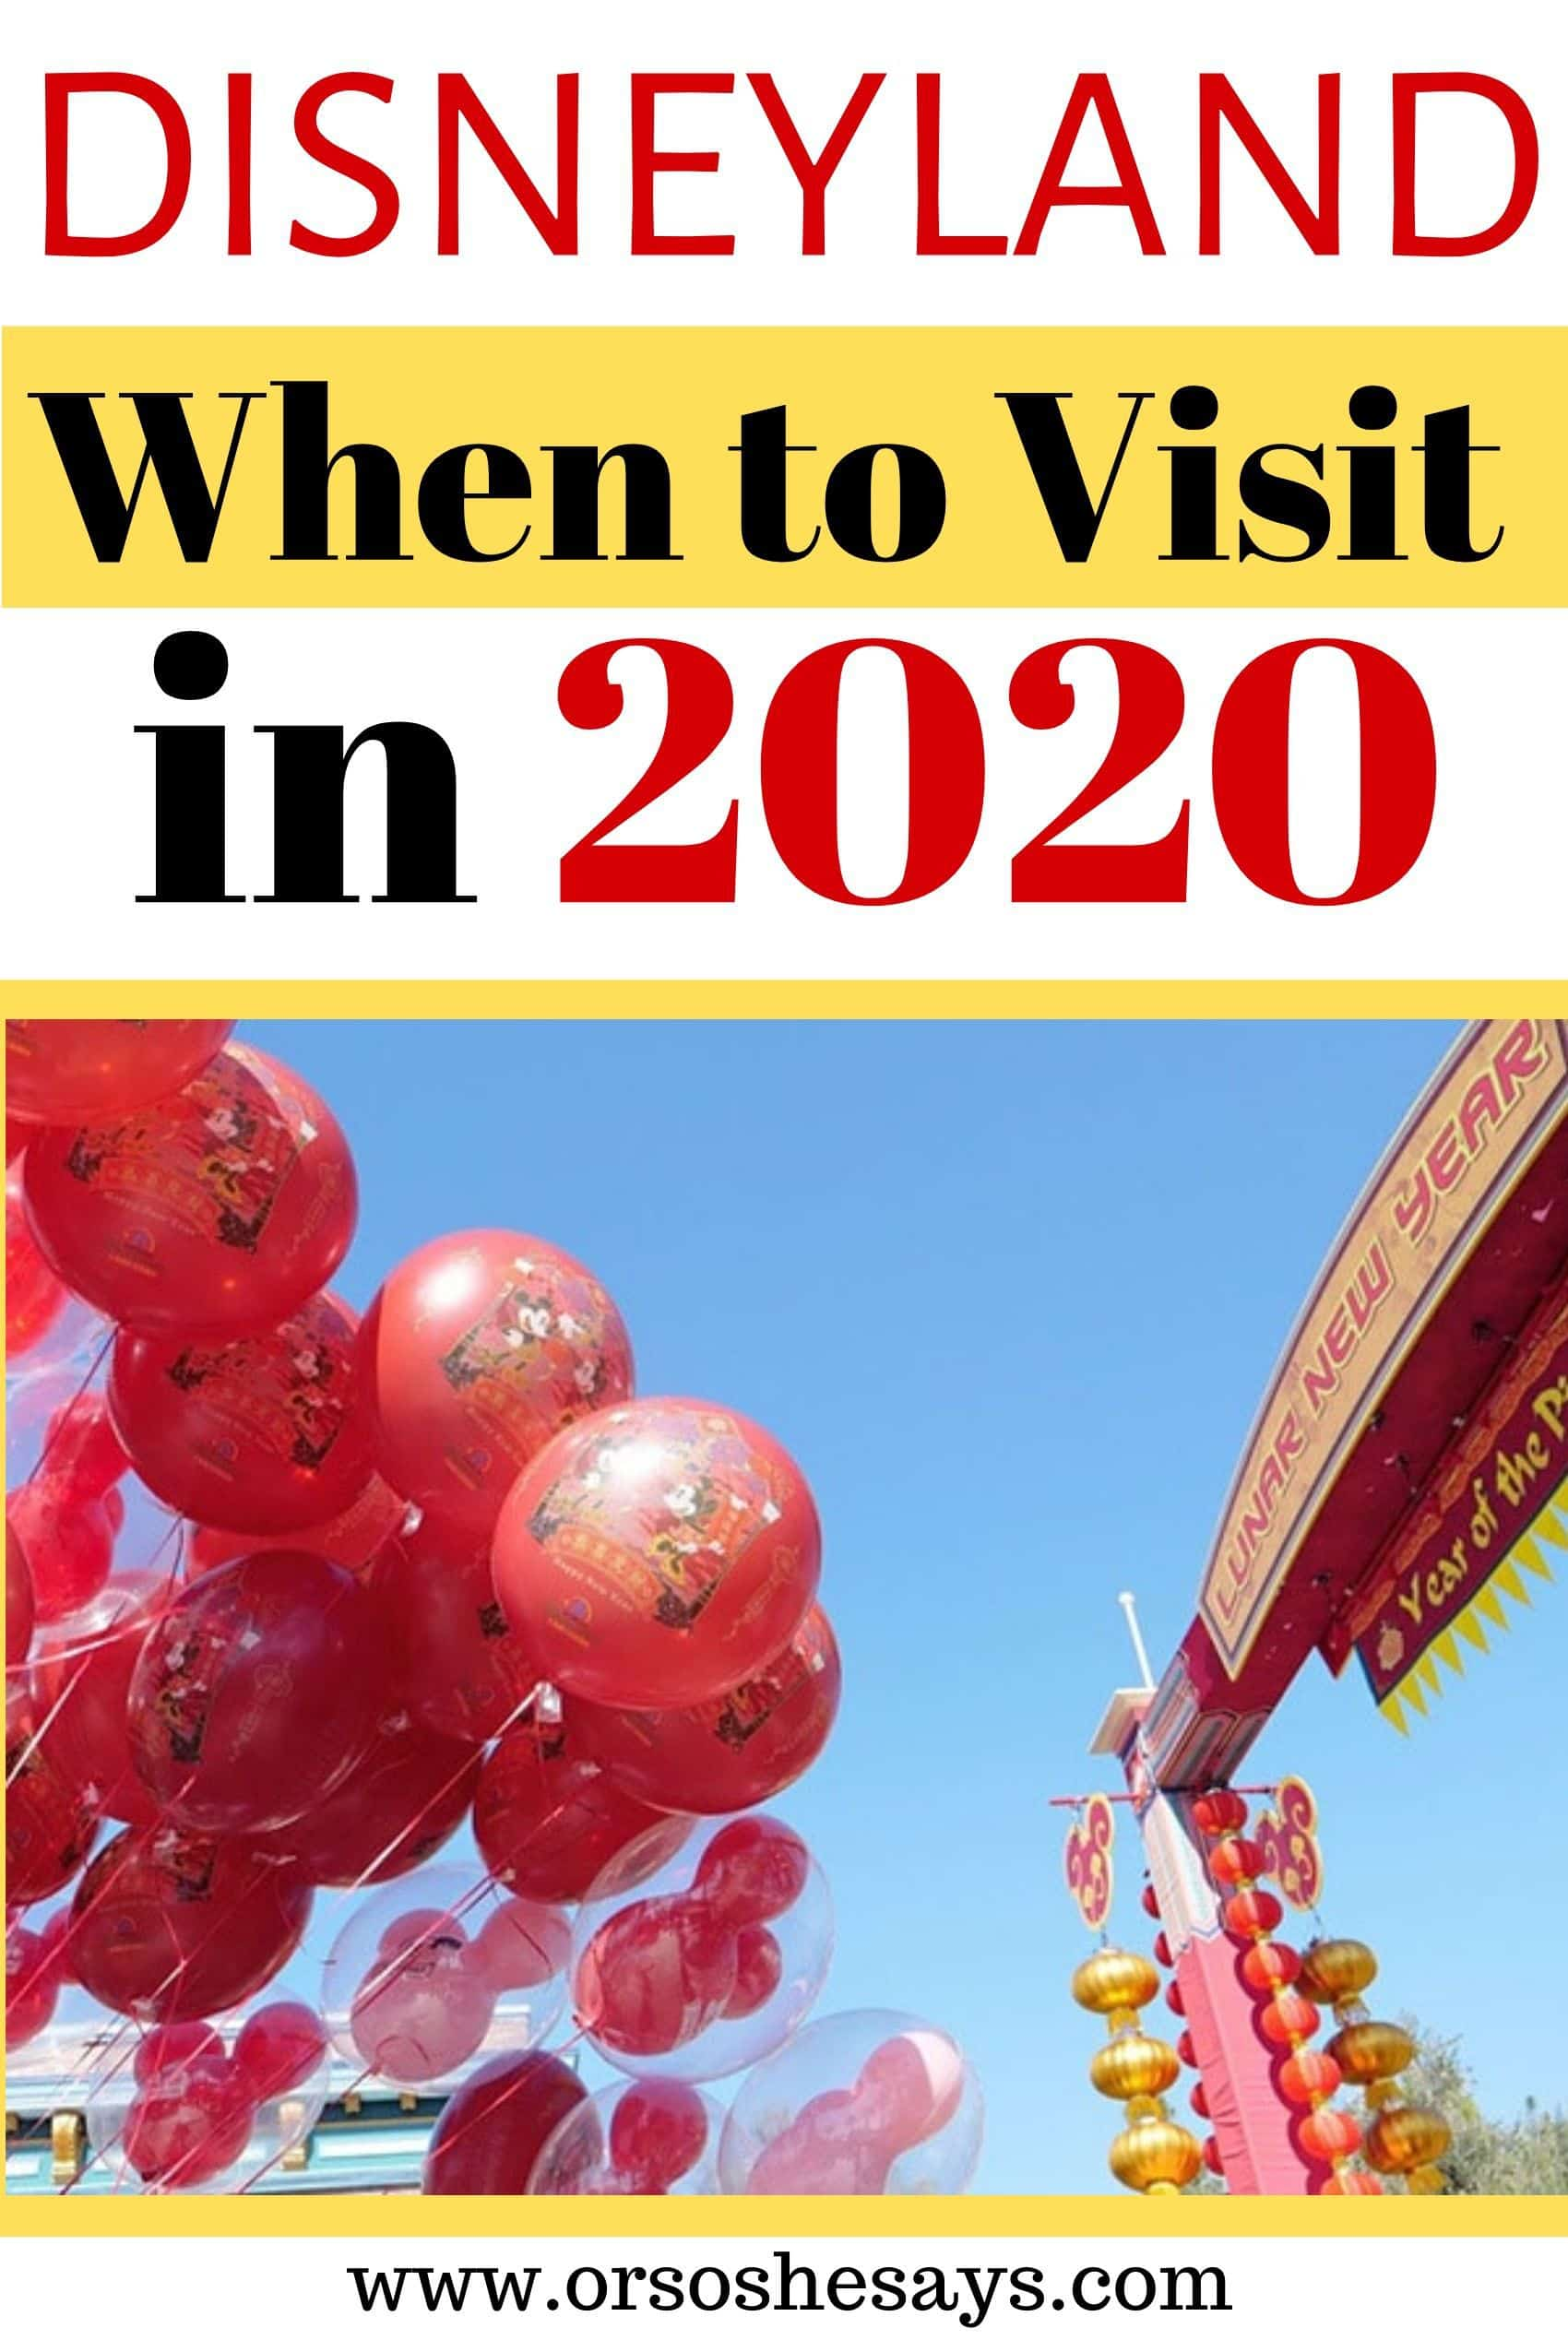 when to visit Disneyland in 2020